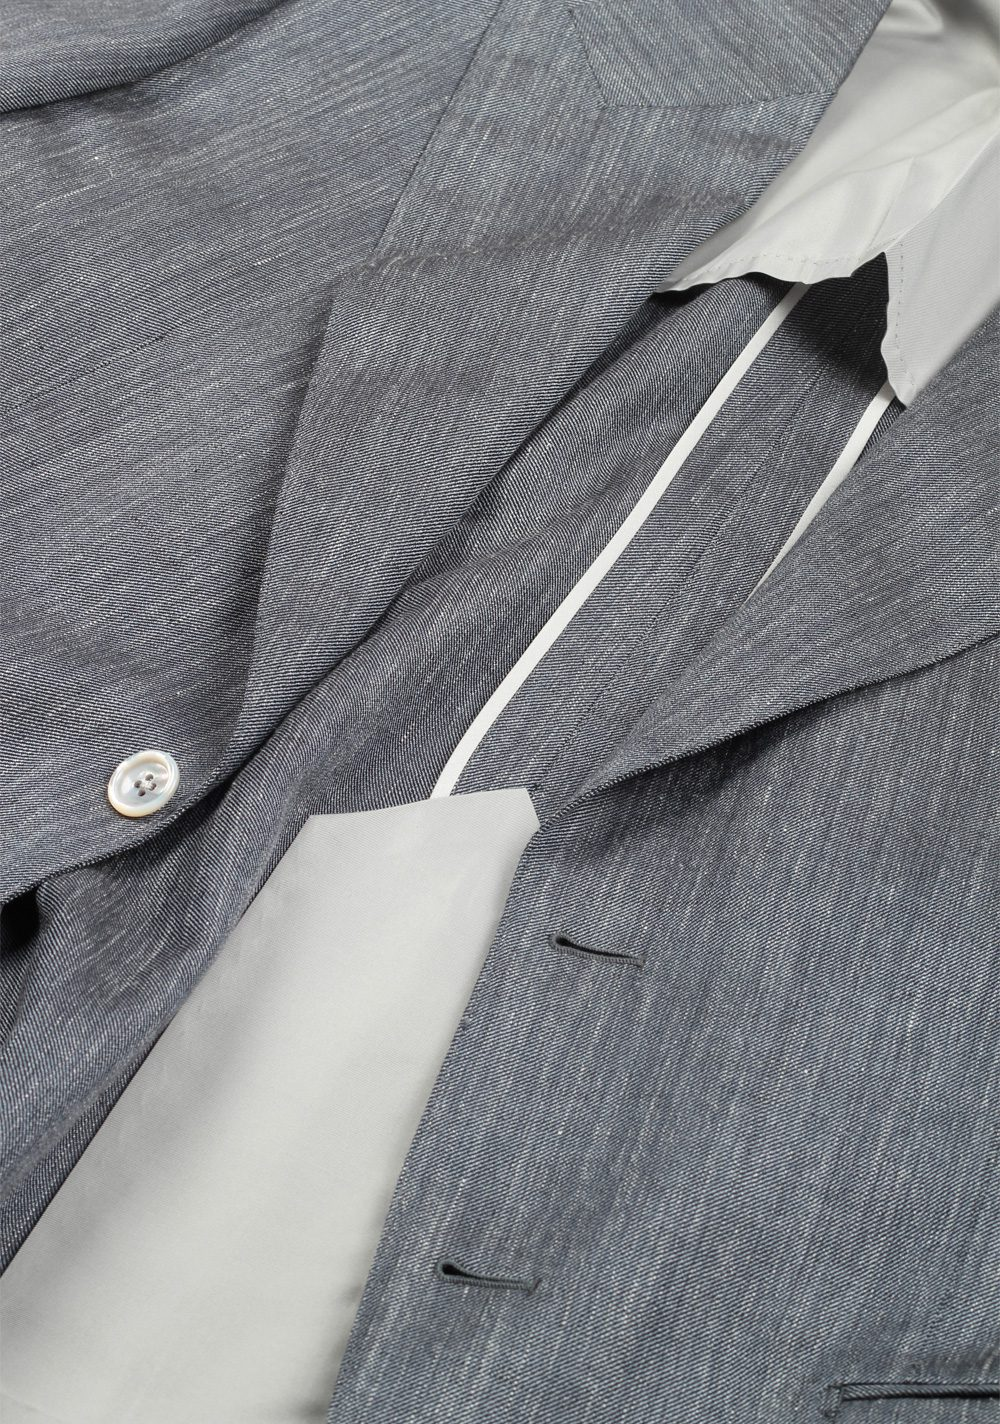 TOM FORD Spencer Gray Sport Coat Size 50 / 40R U.S. | Costume Limité